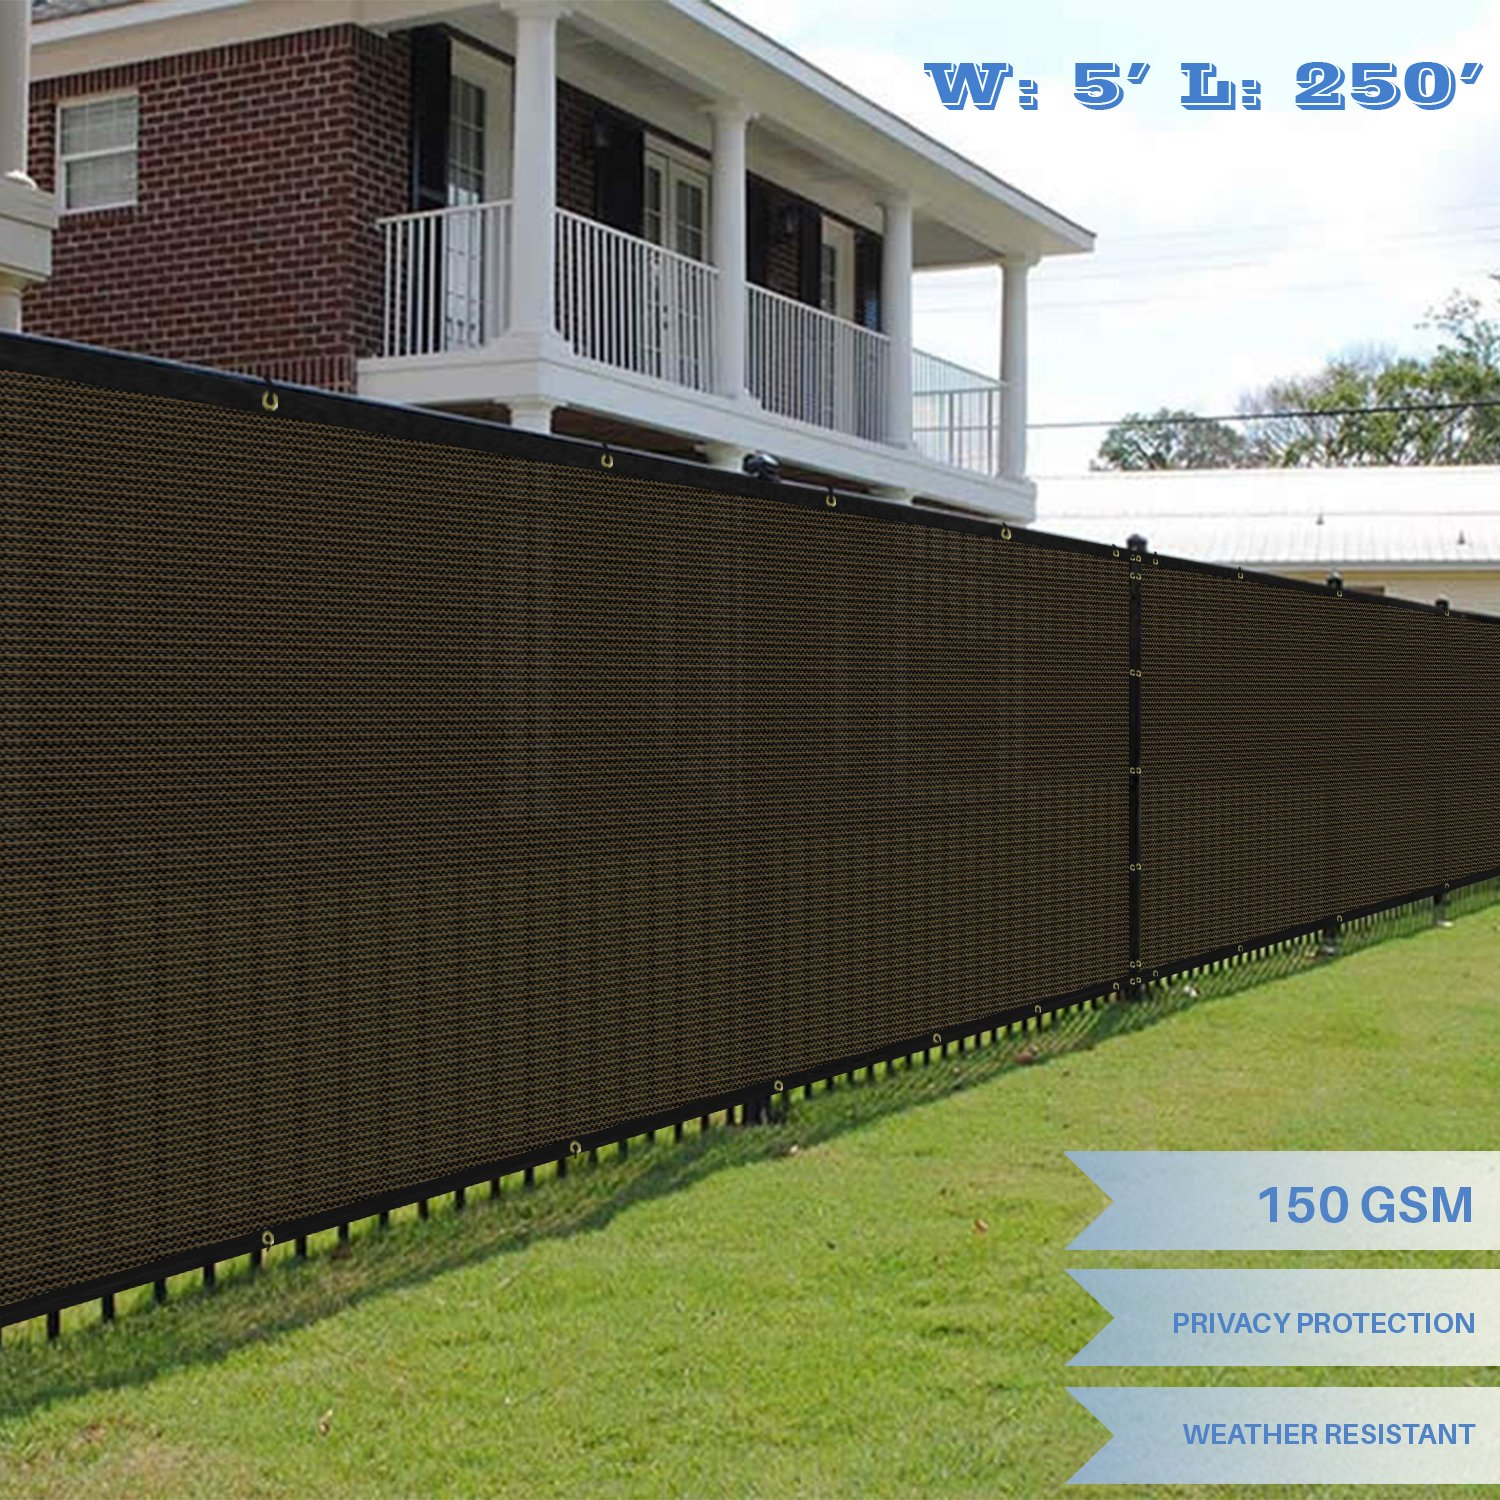 E&K Sunrise 5' x 250' Brown Fence Privacy Screen, Commercial Outdoor Backyard Shade Windscreen Mesh Fabric 3 Years Warranty (Customized Sizes Available) - Set of 1